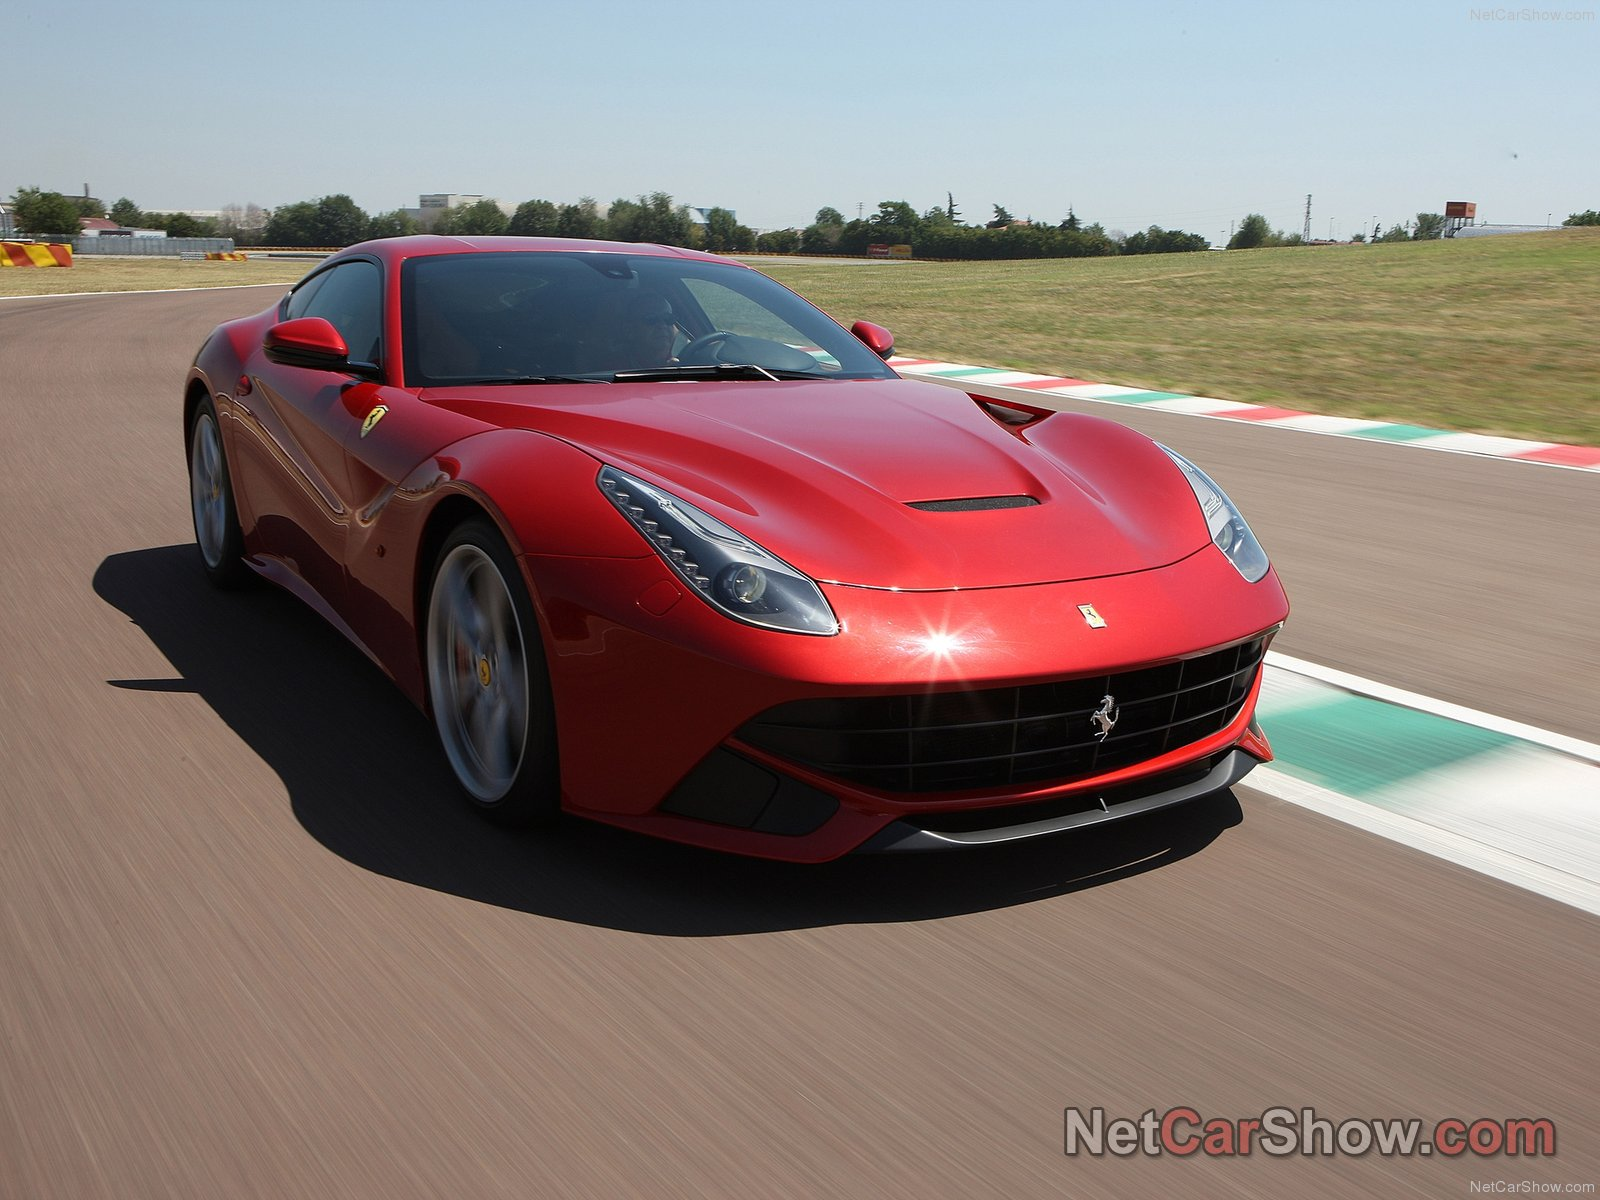 Ferrari F12 berlinetta photo 94119